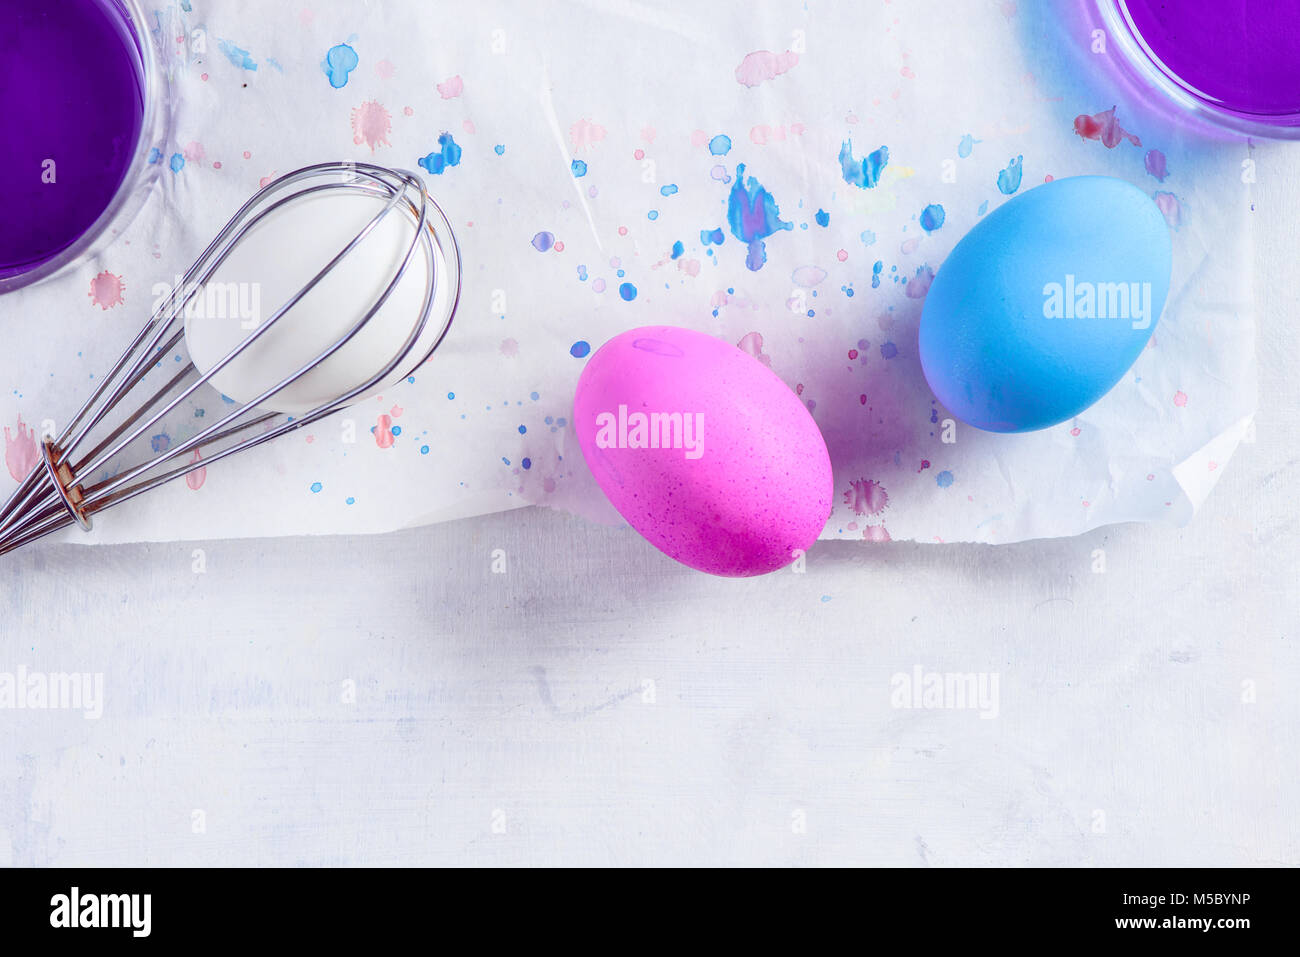 Food Dye Stockfotos & Food Dye Bilder - Alamy